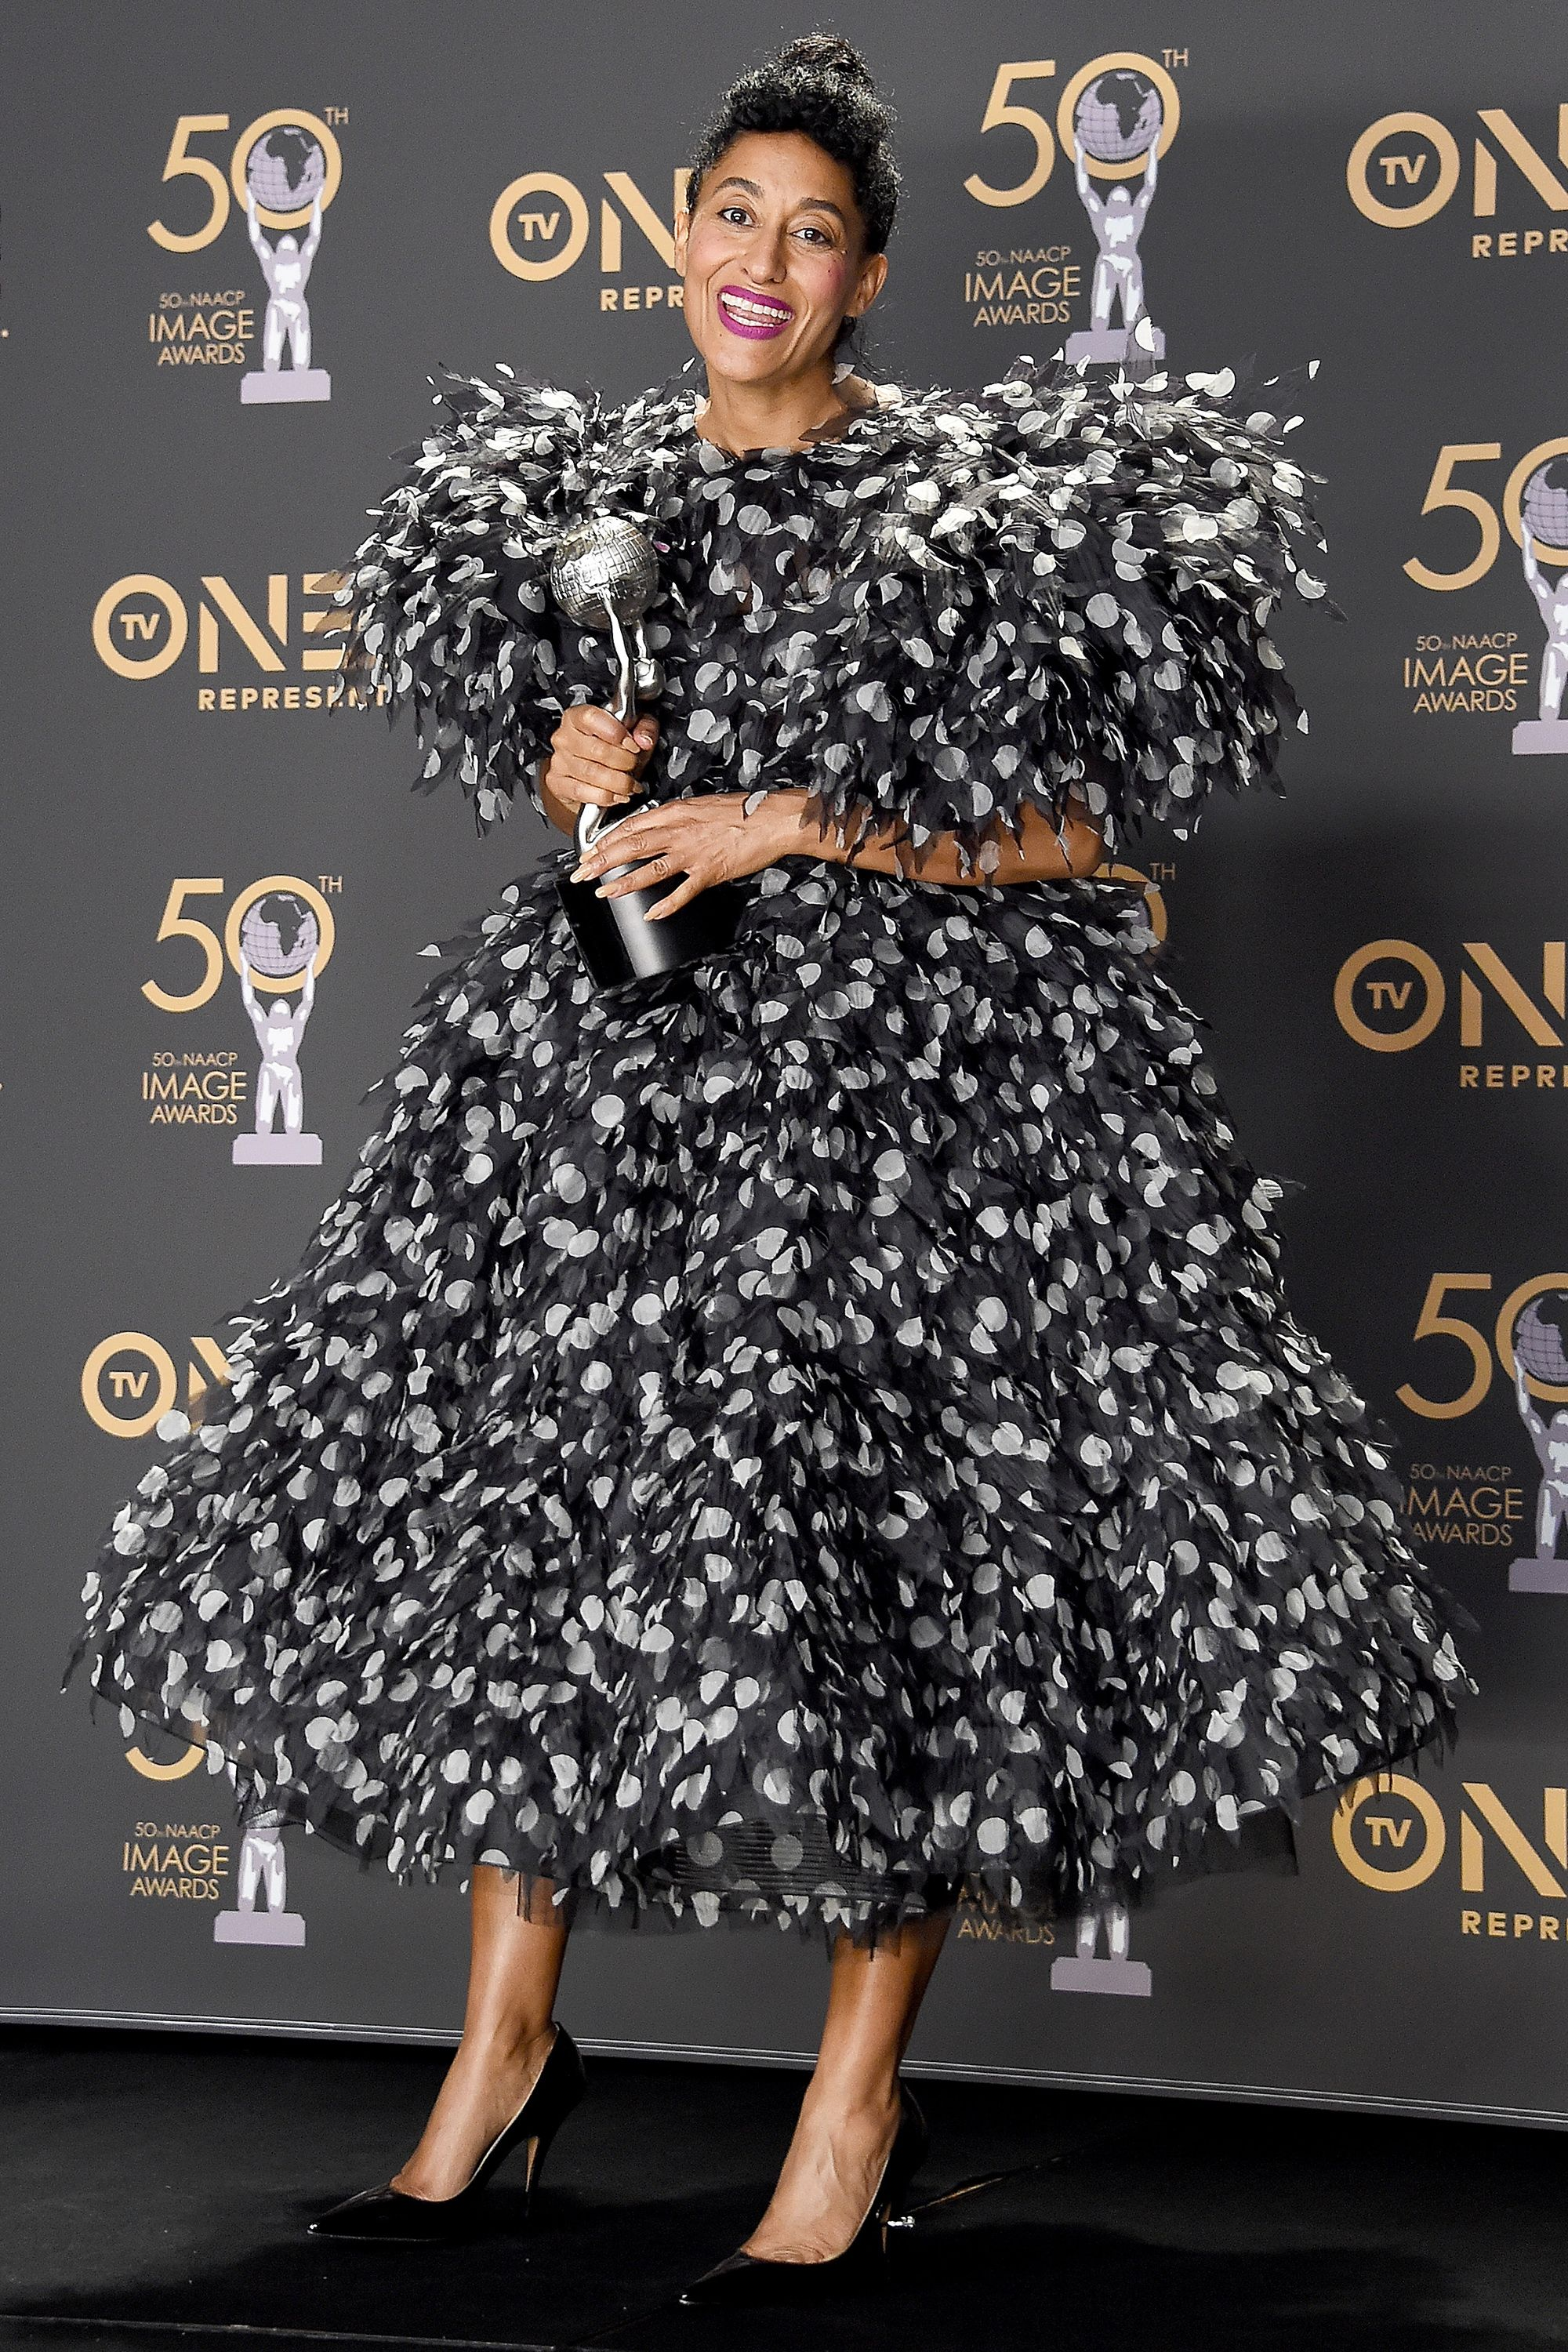 Who: Tracee Ellis Ross When: March 30, 2019 Wearing: Marc Jacobs Why: Giant, poofy dresses aren't for everyone, but you can't deny the force that is Tracee Ellis Ross at the NAACP Image Awards. We appreciate her ferocious commitment to making fashion fun.